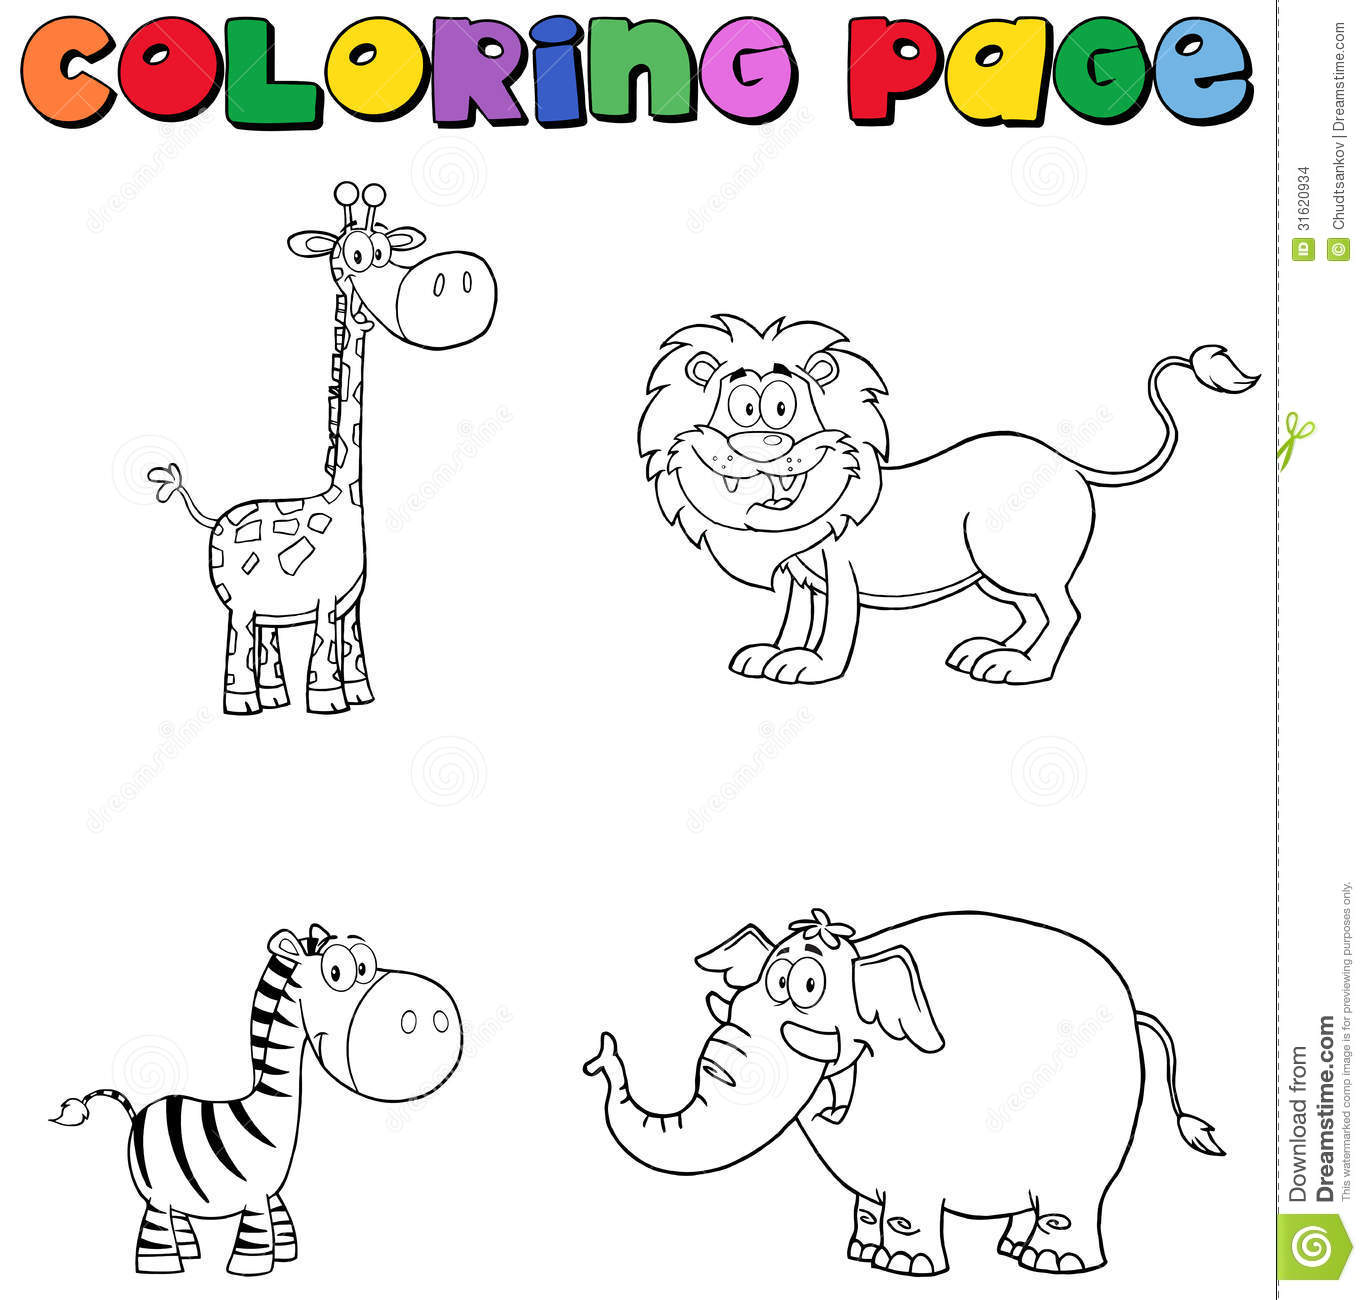 Coloring Pages Coloring Pages Jungle Animals jungle animals coloring page stock images image 31620934 page